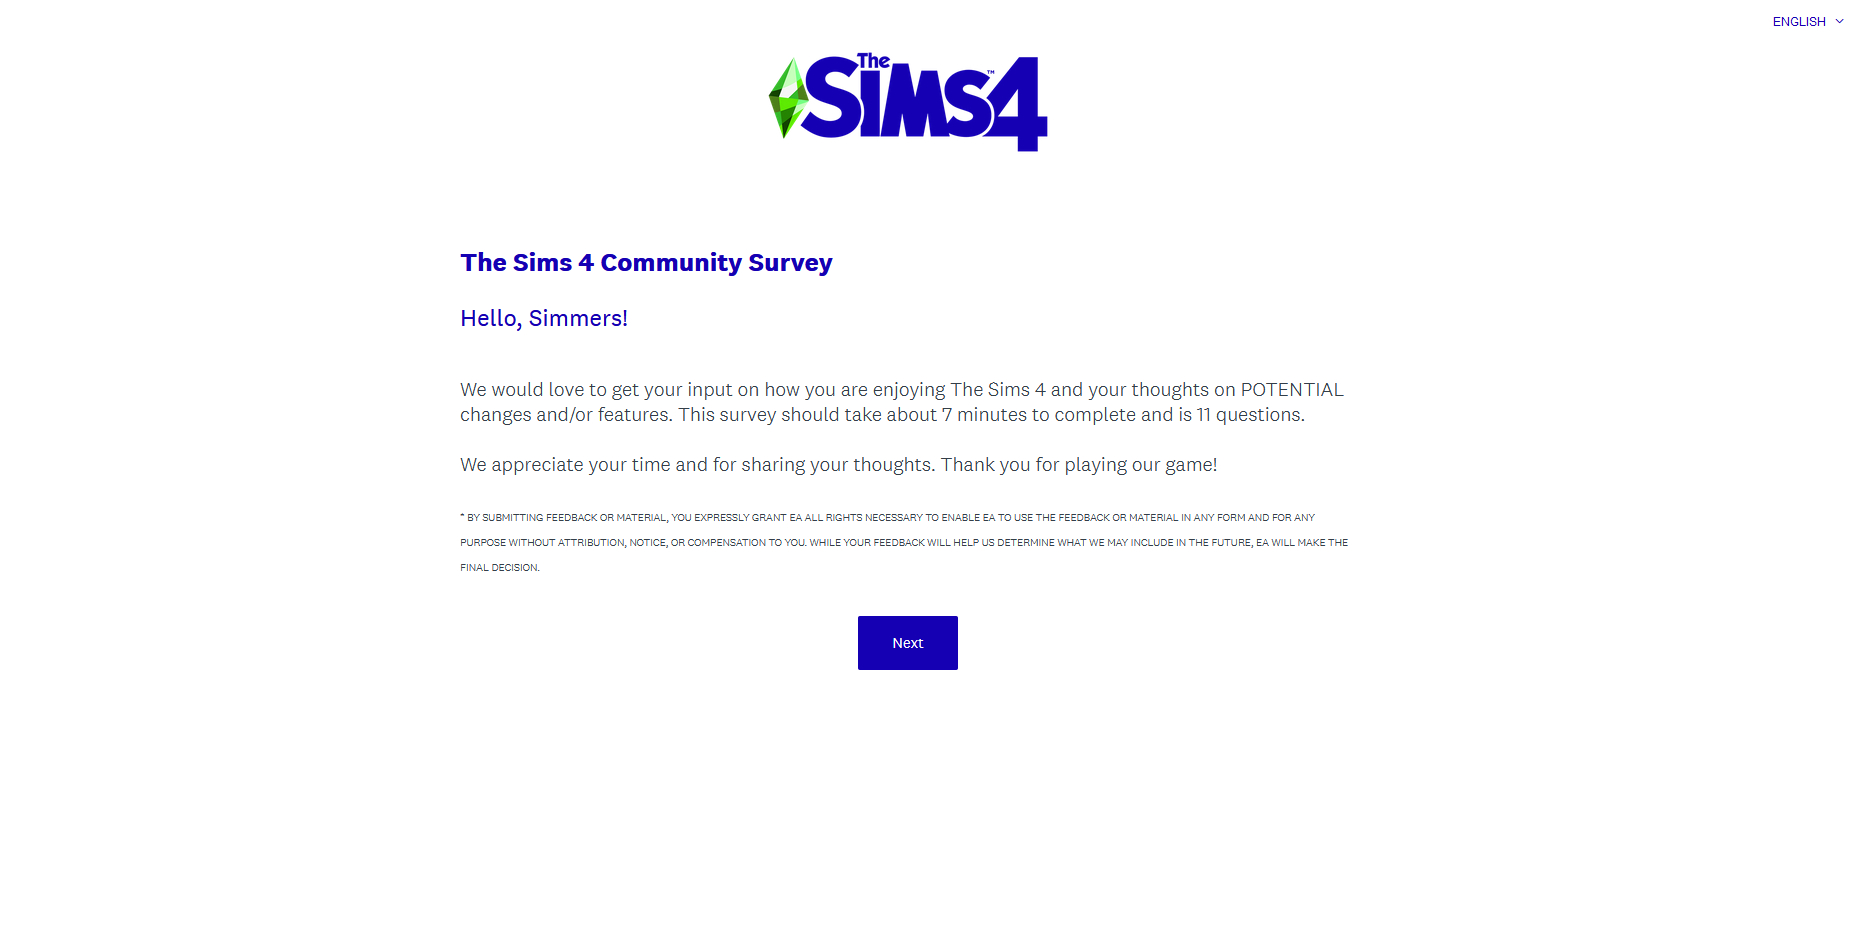 The Sims 4 Community Survey: January 2020 with regard to Sims 4 Icons 2020